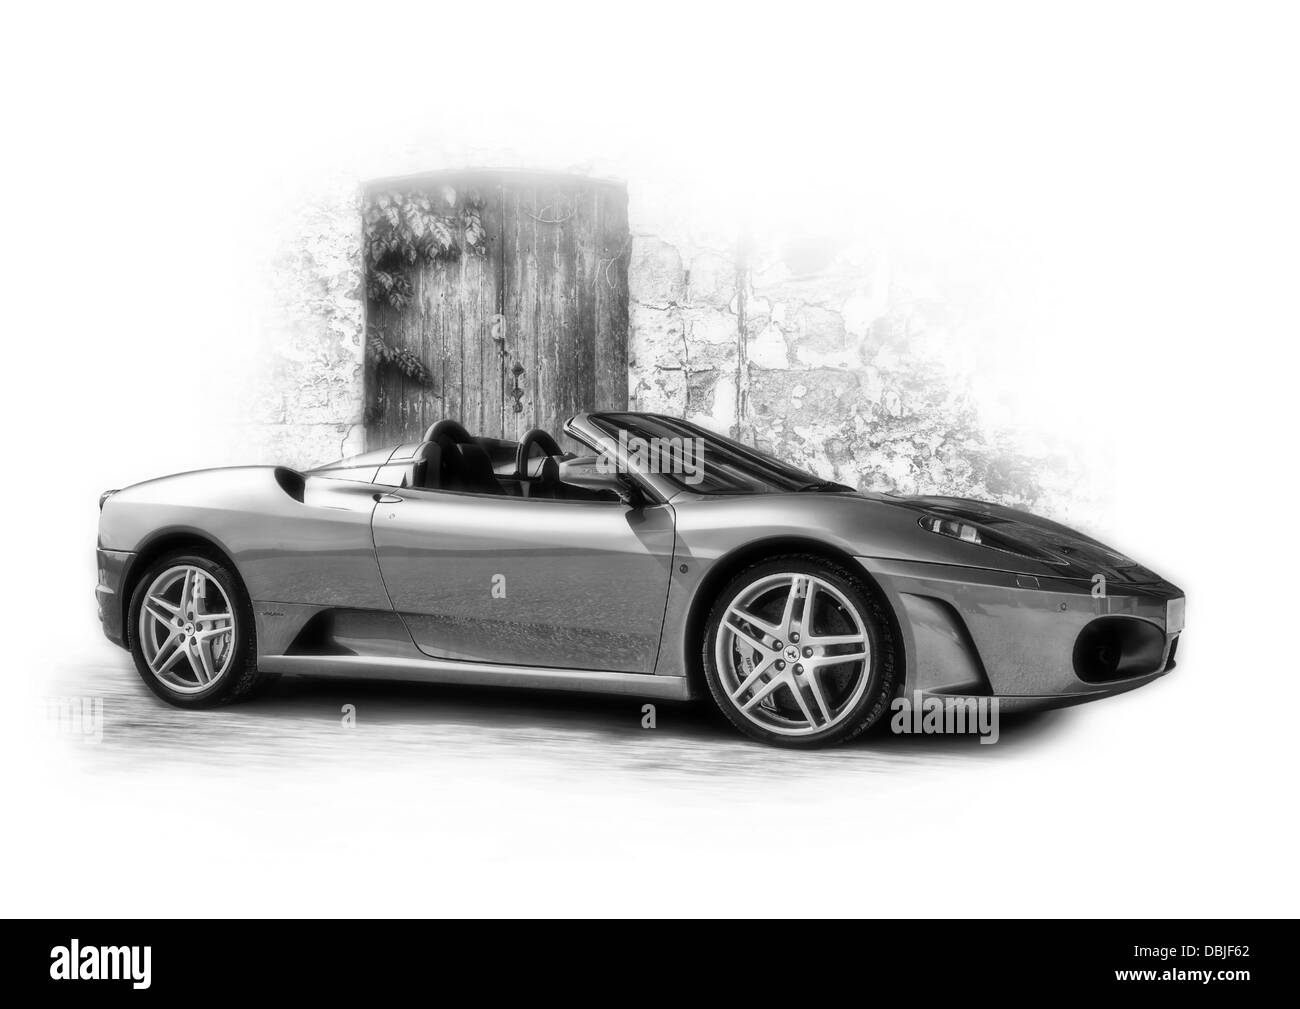 Ferrari F430 photographed on the street and then edited in Photoshop to create the final image. - Stock Image